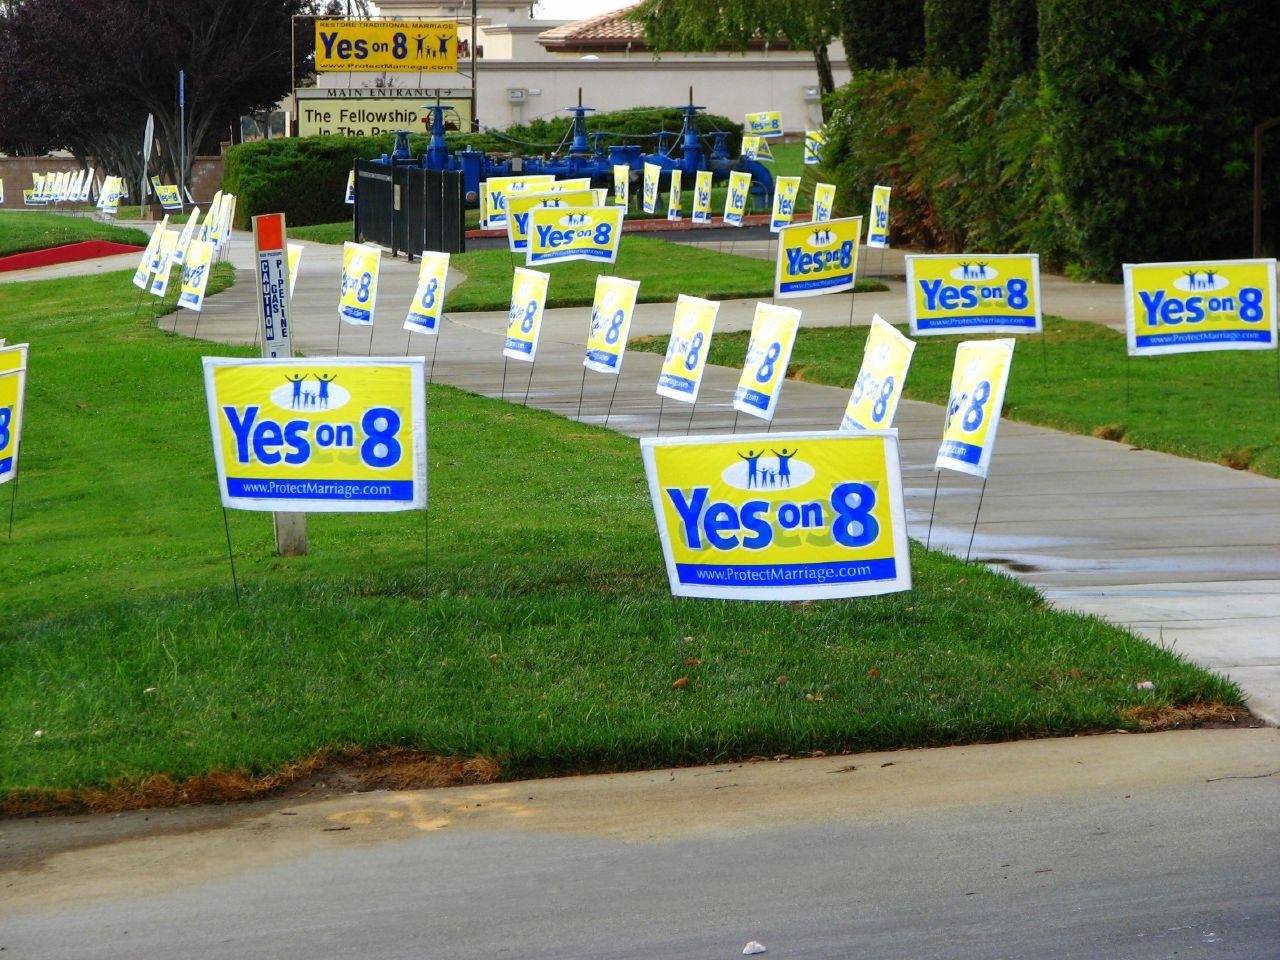 """Yes on 8"" lawn signs in California, 2008."